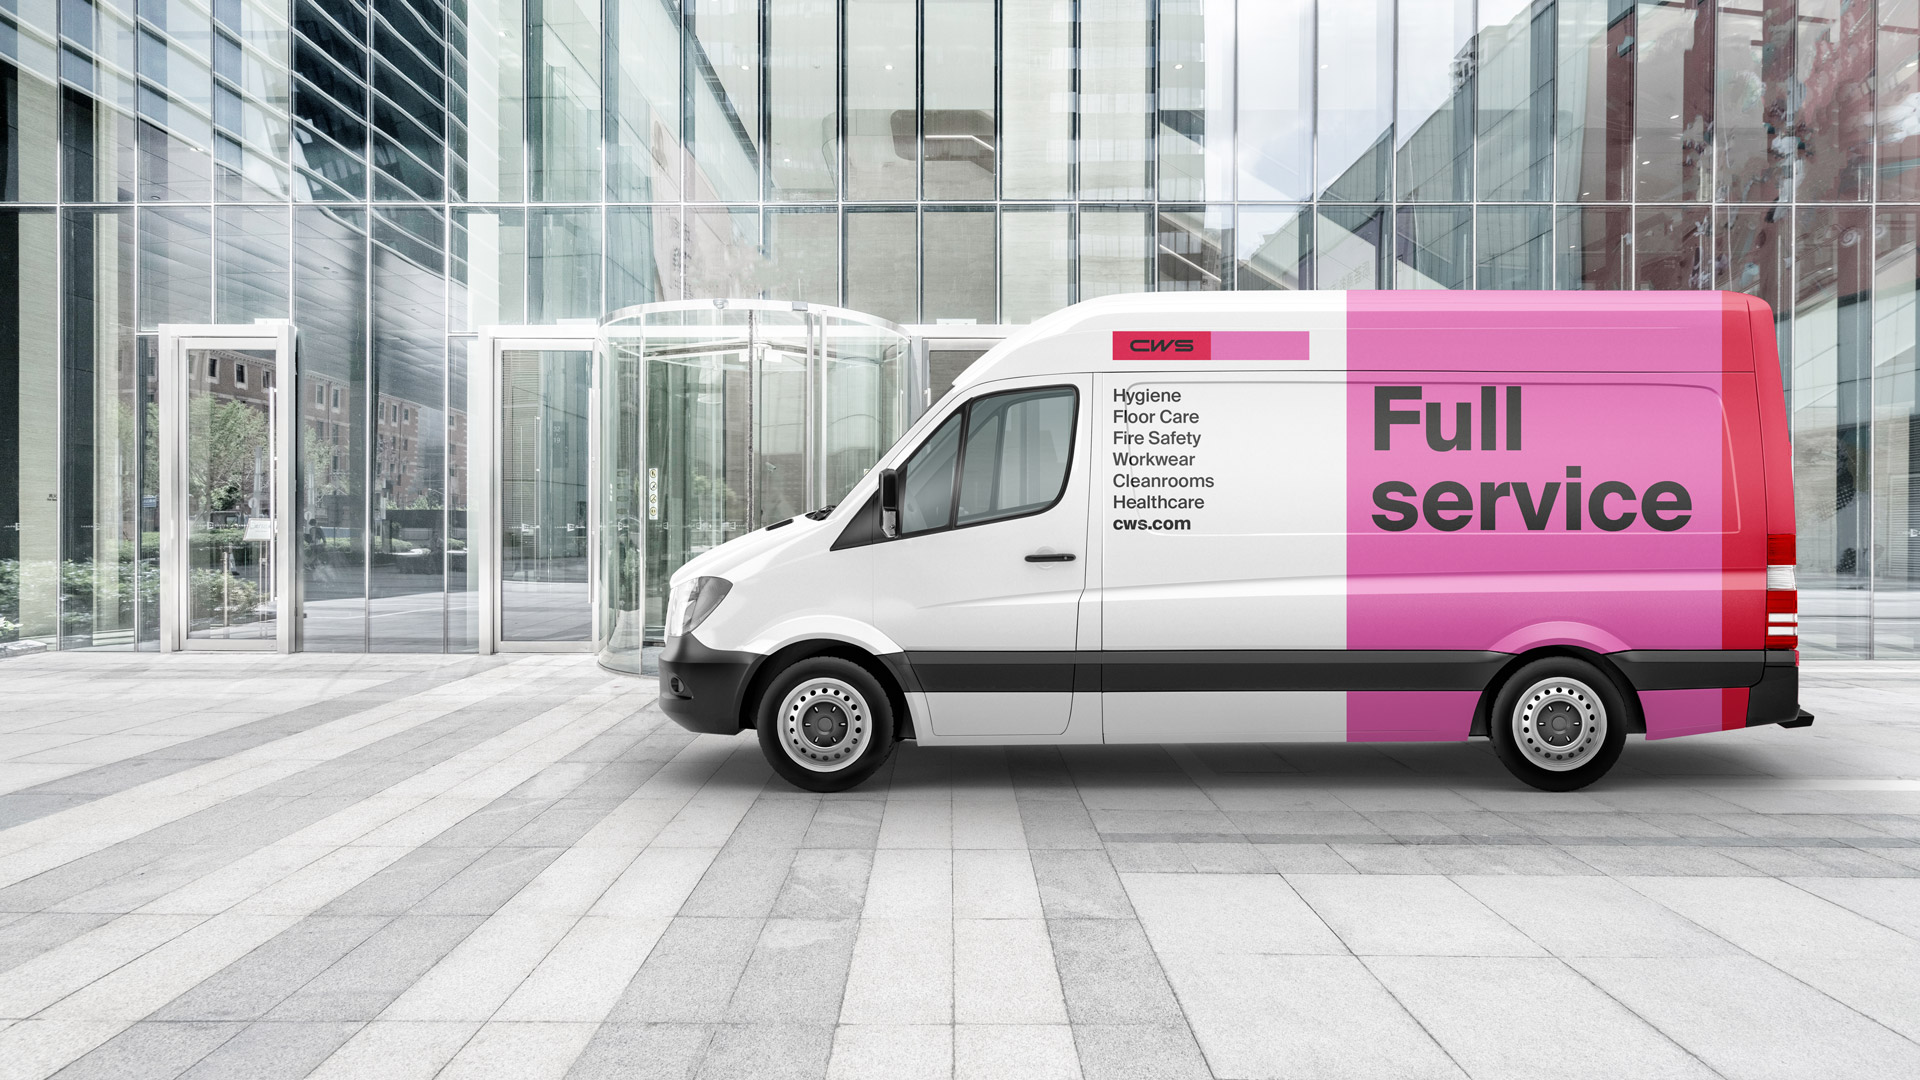 The picture shows the new corporate design of CWS on a white van.